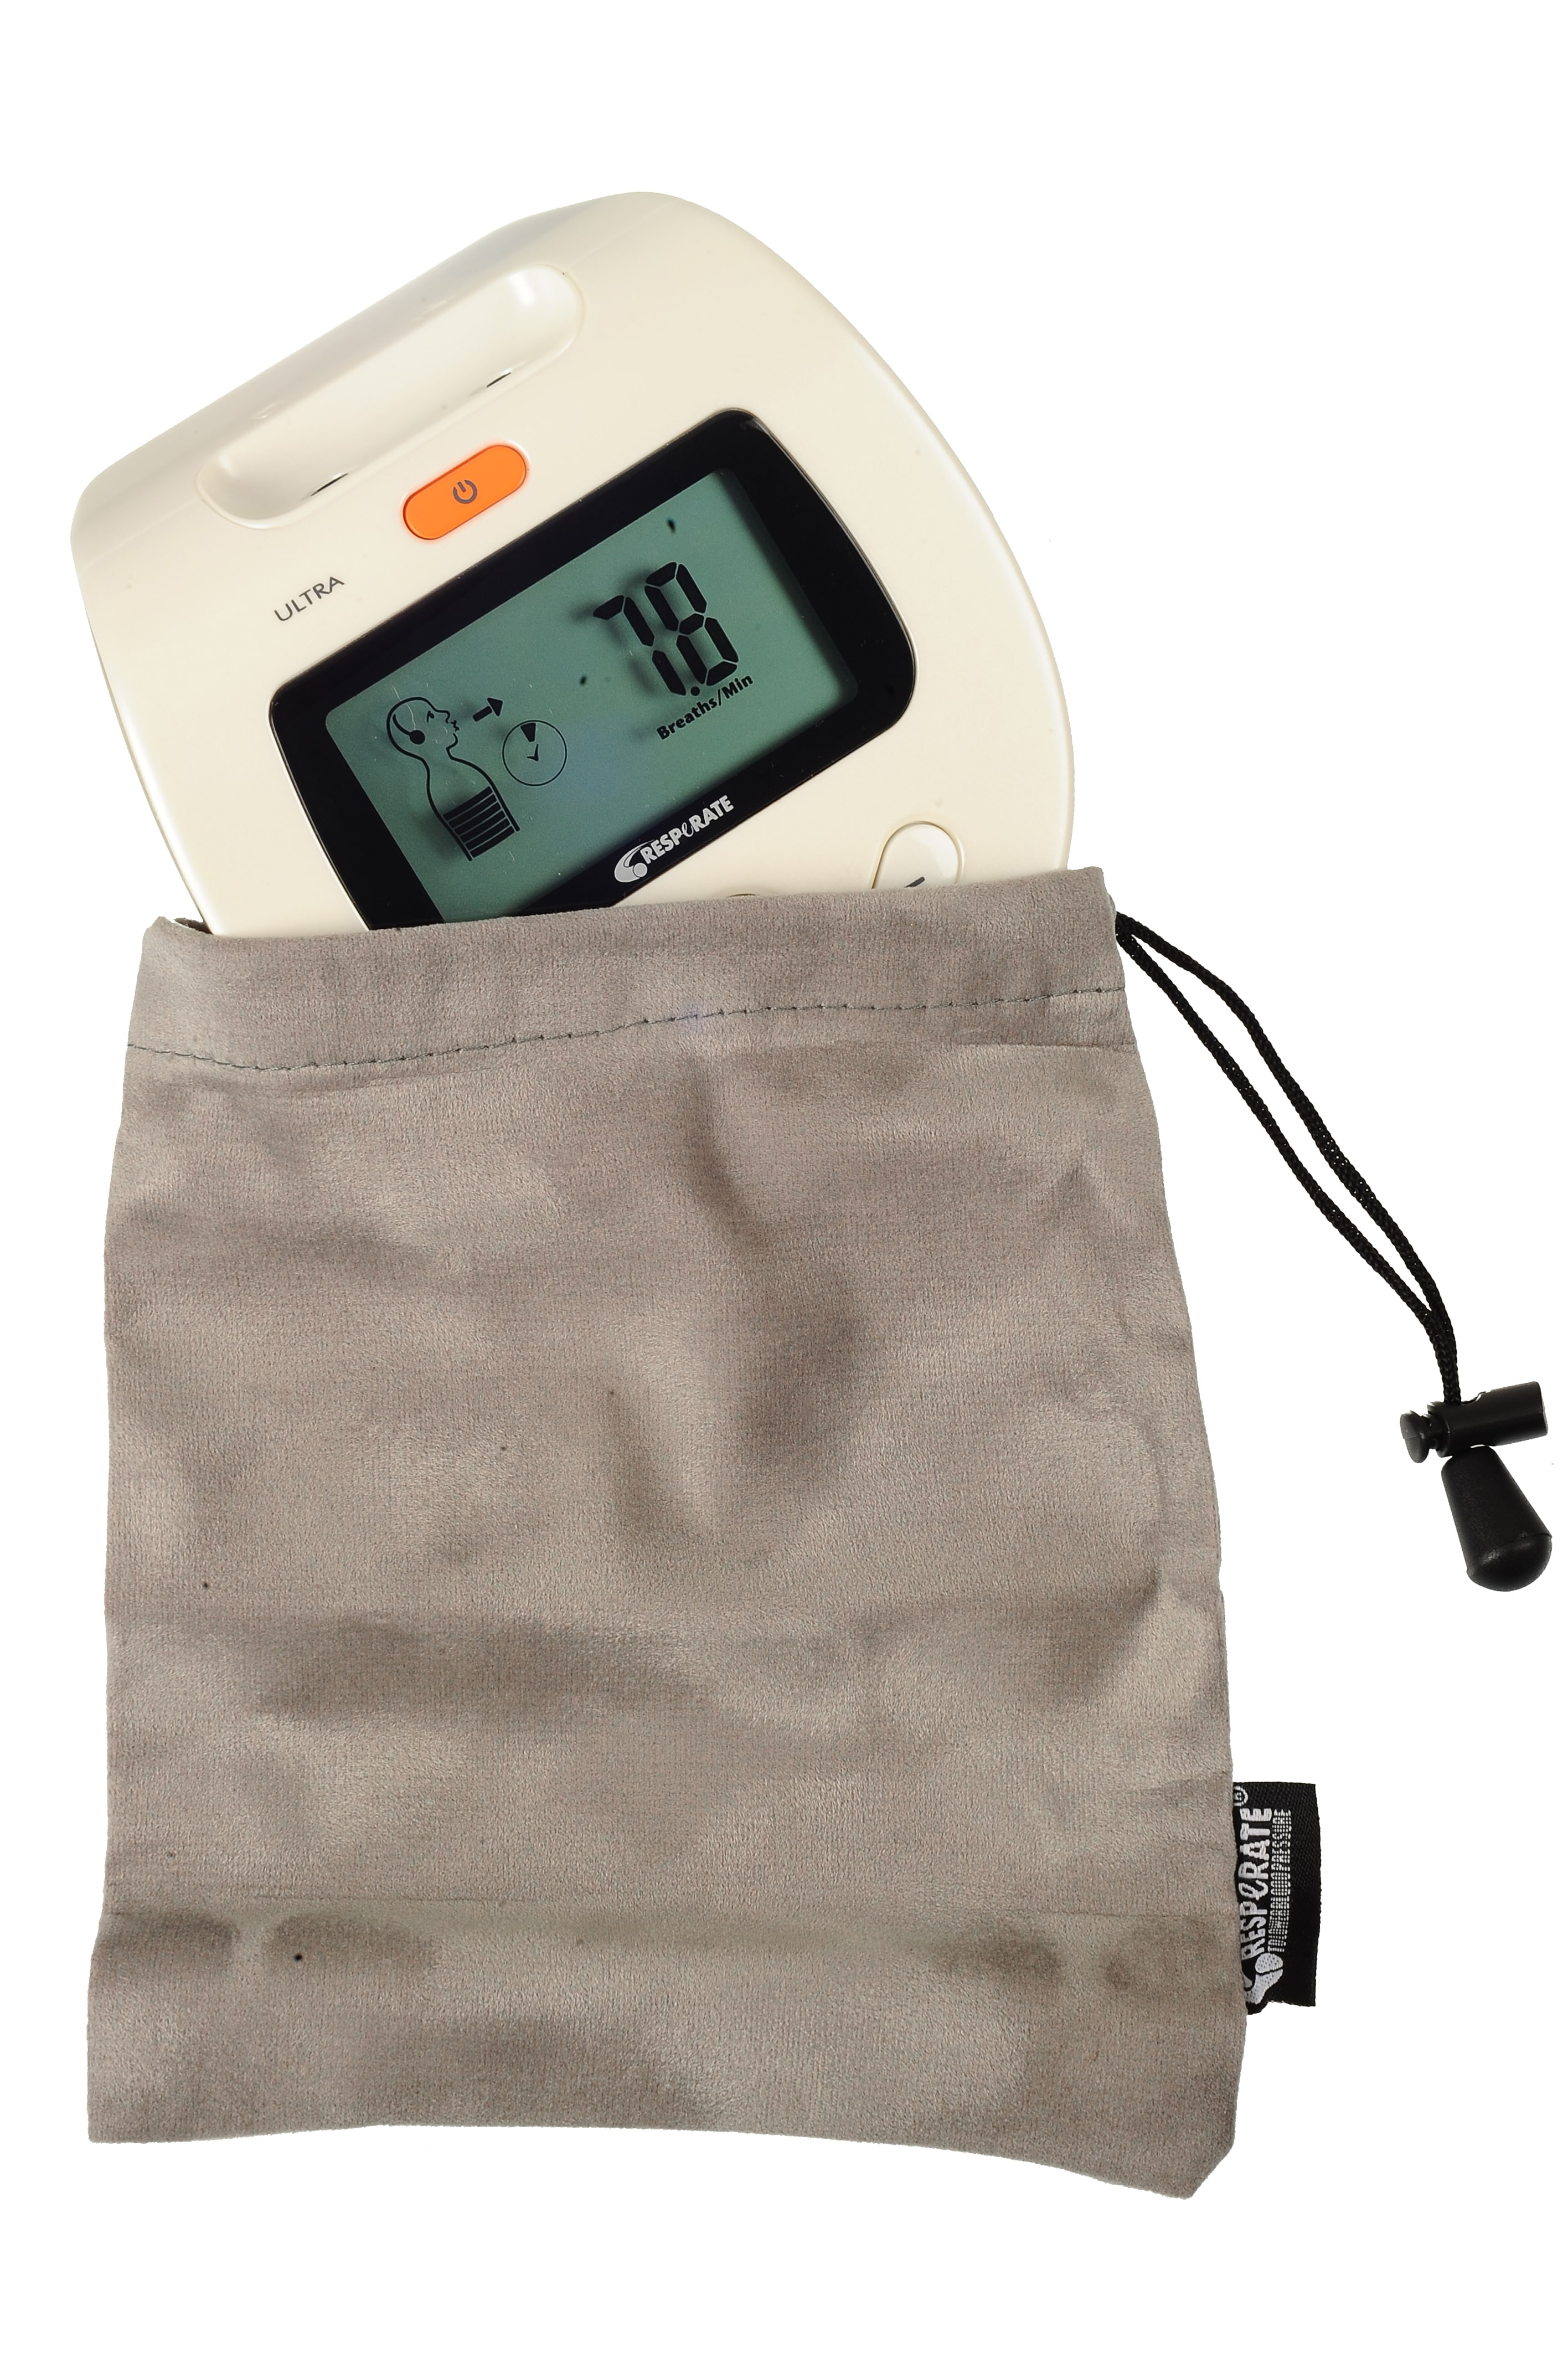 RESPeRATE device in pouch